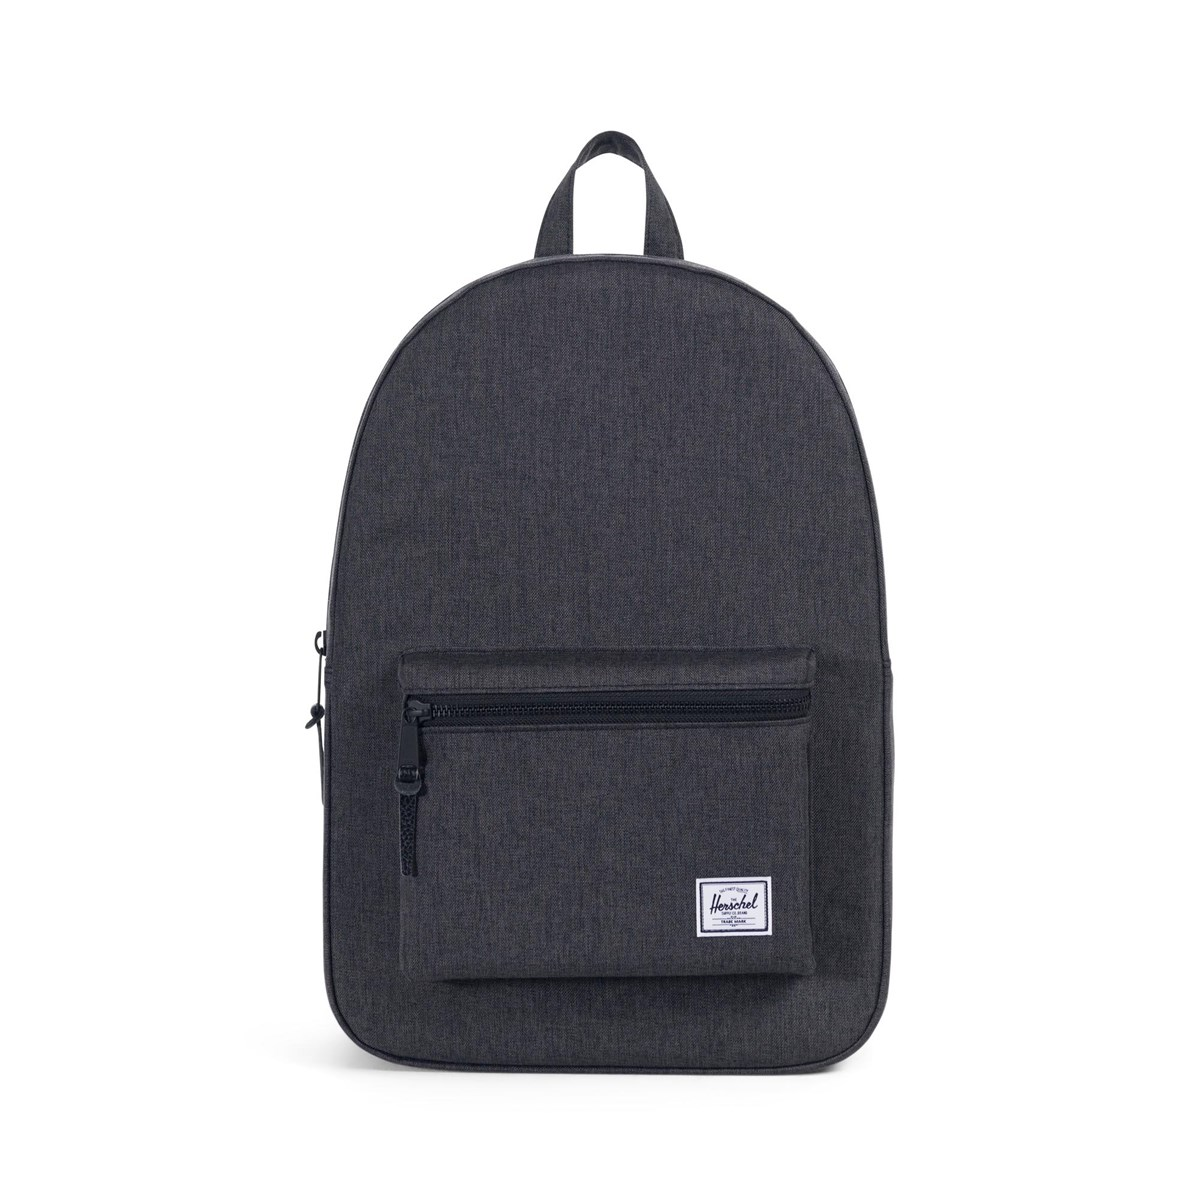 Settlement Backpack in Black. Previous. default view · ALT1 · ALT2 c5620ff713ceb